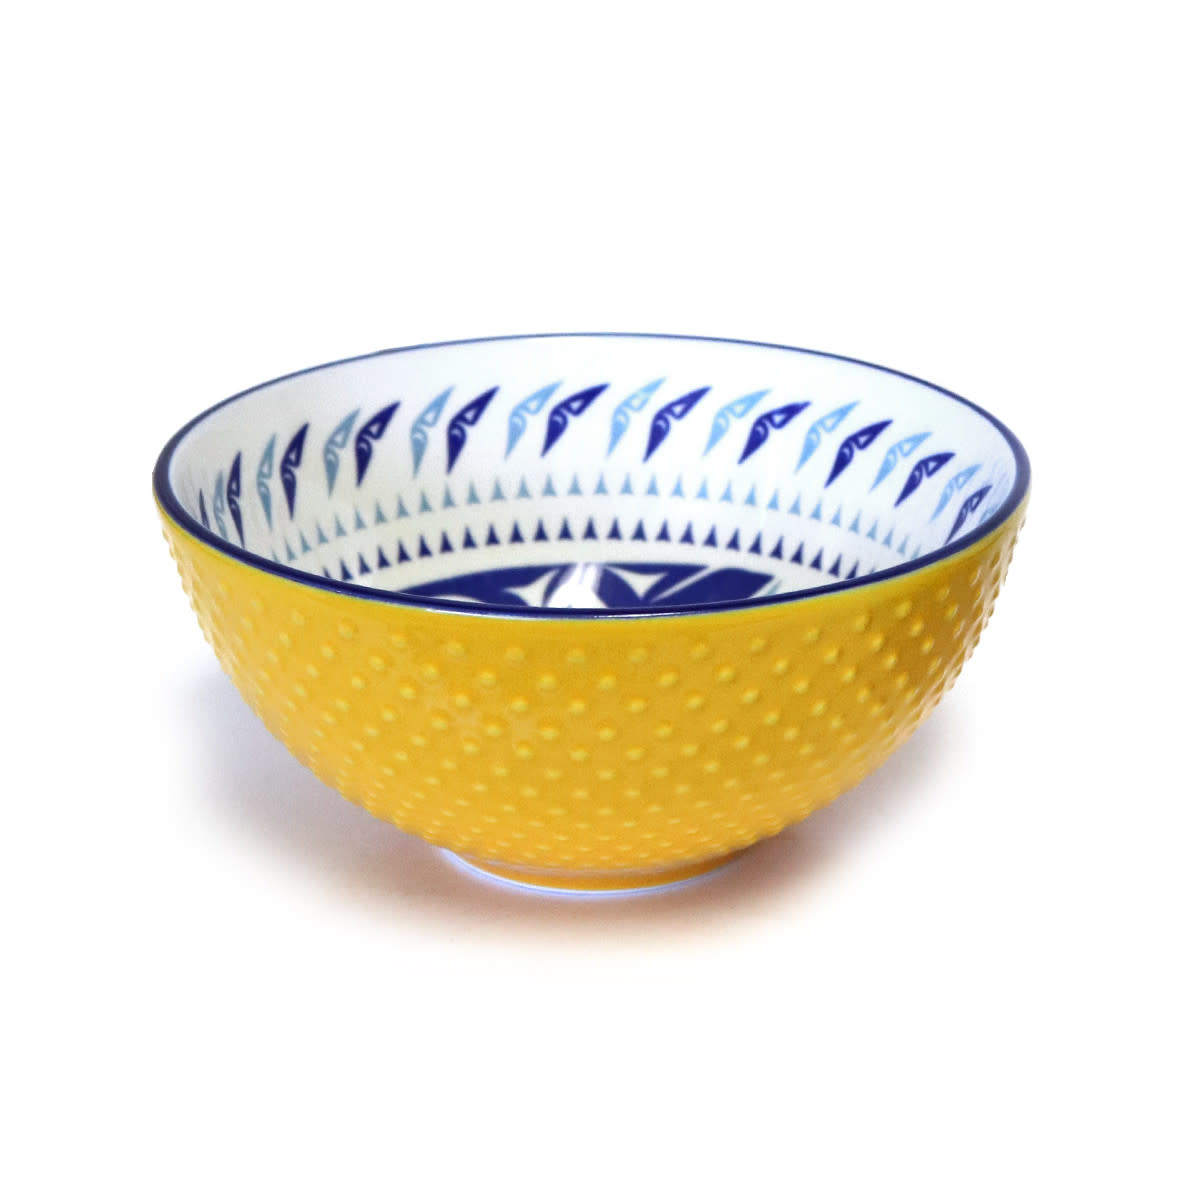 Porcelain Art Bowl - Medium-8